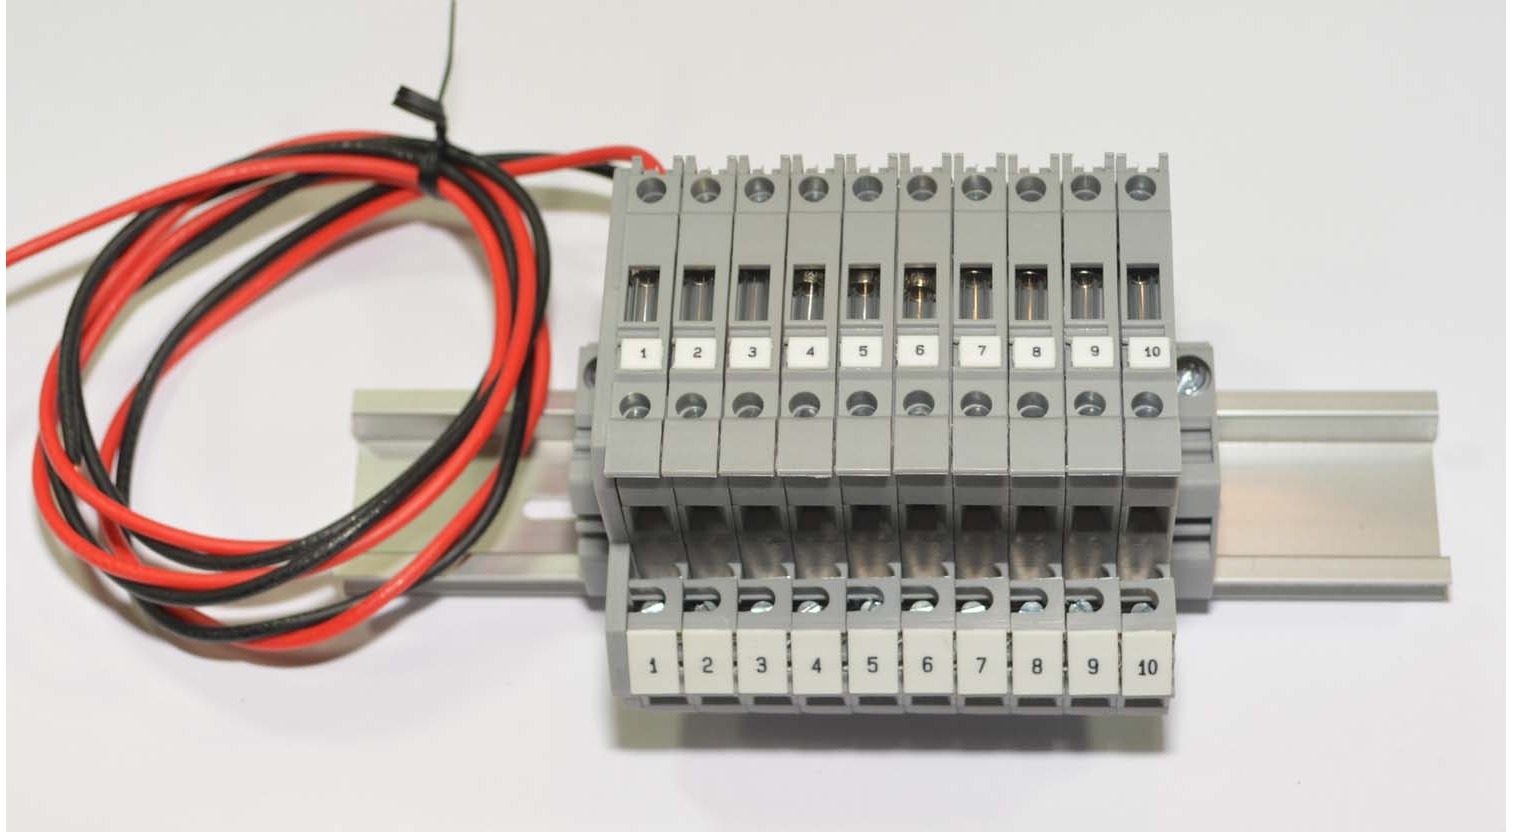 Altech DDFL4U-A10 Double Level Fused DIN Rail Terminal Block embly on